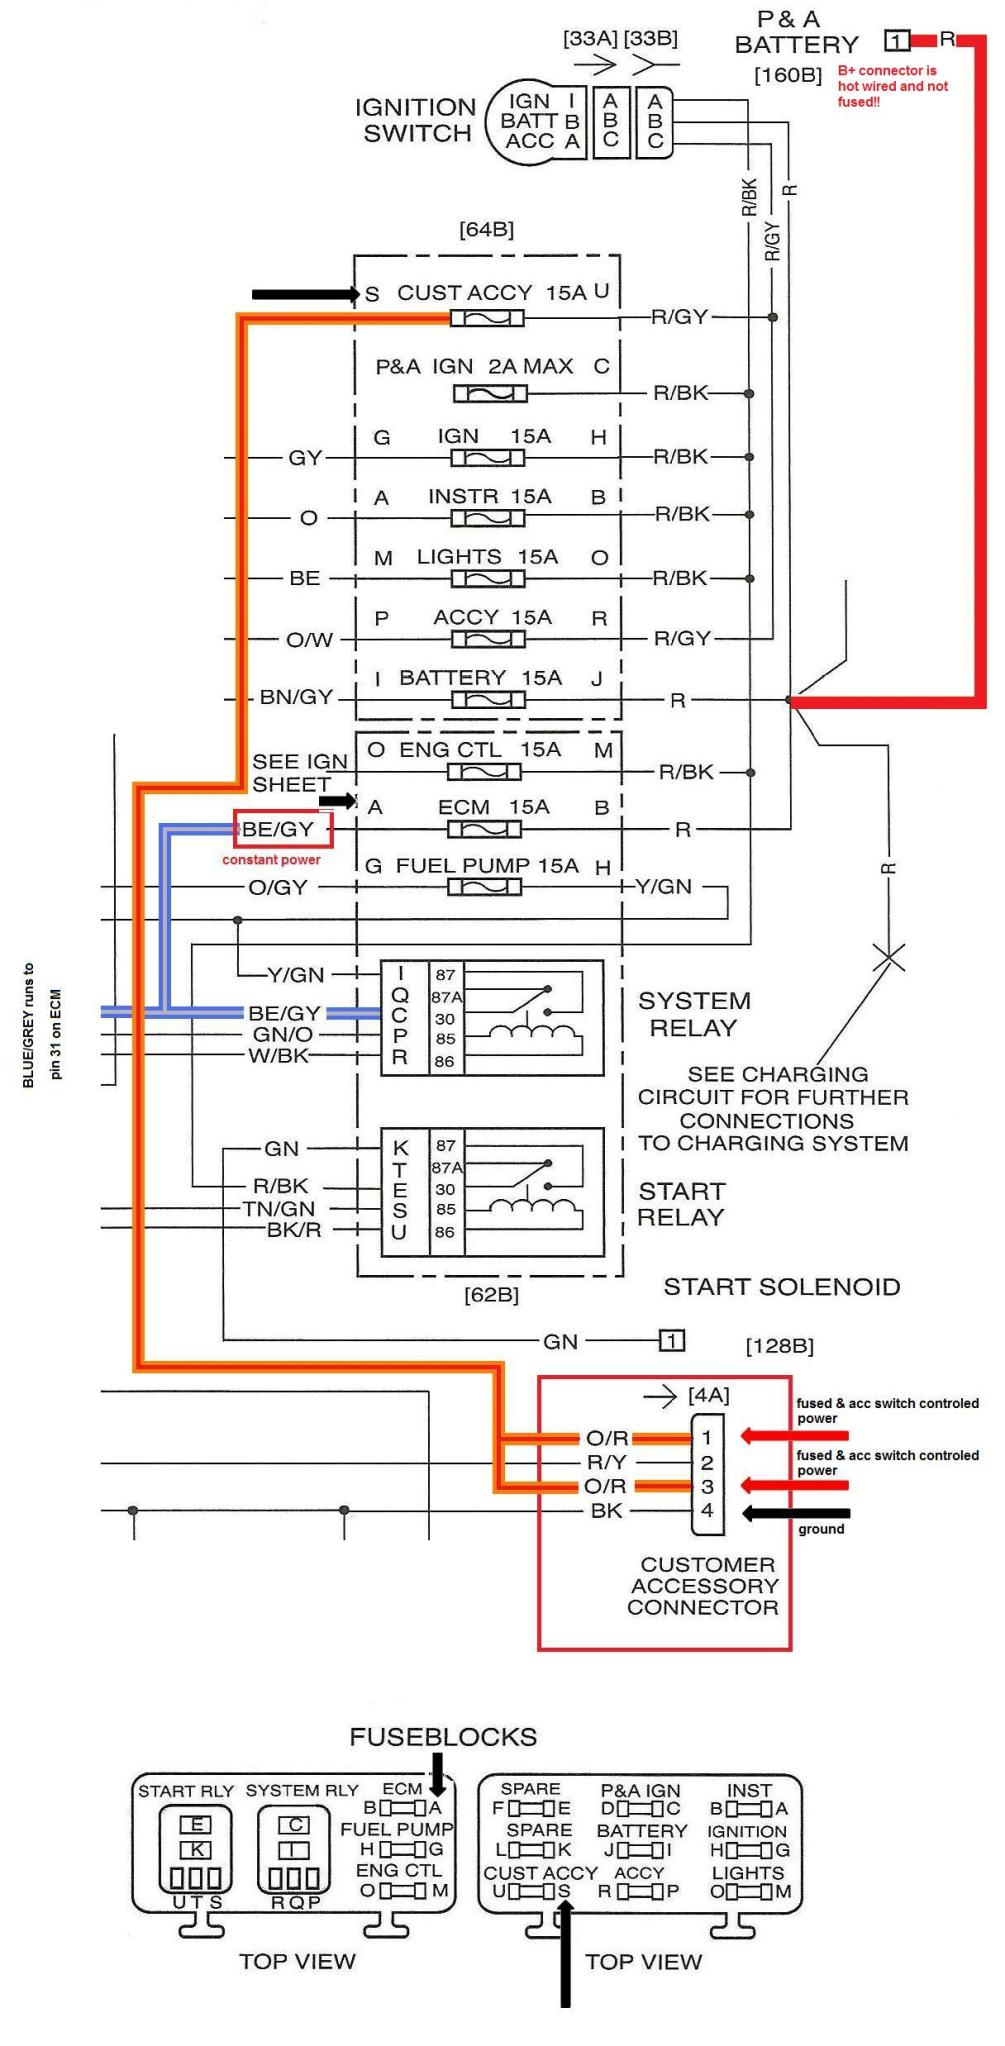 hight resolution of harley stereo wiring diagram wiring diagram third level 2006 ez go wiring diagram 2006 harley davidson radio wiring diagram